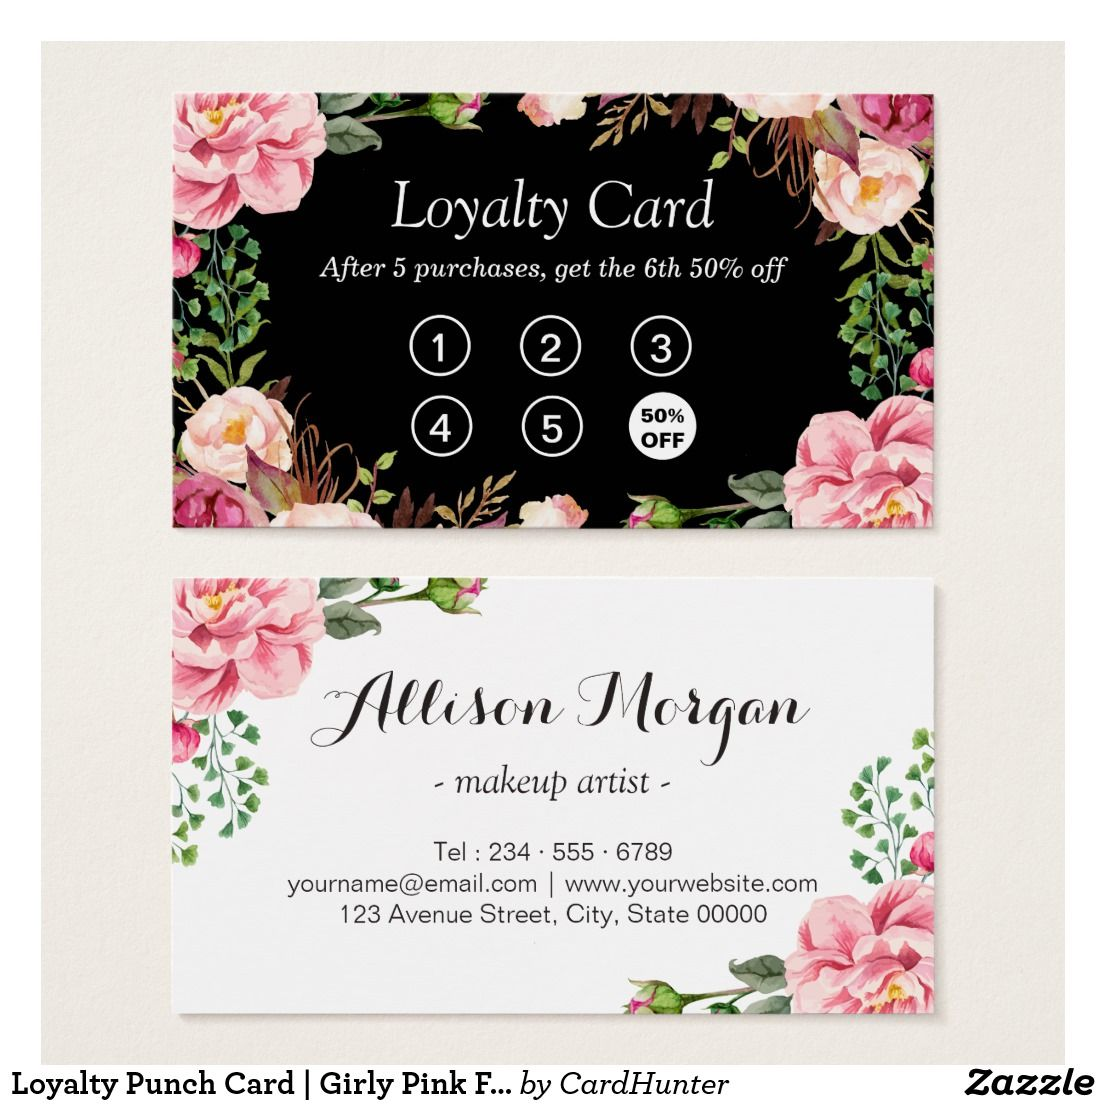 Loyalty Punch Card Girly Pink Floral Wrapping Zazzle